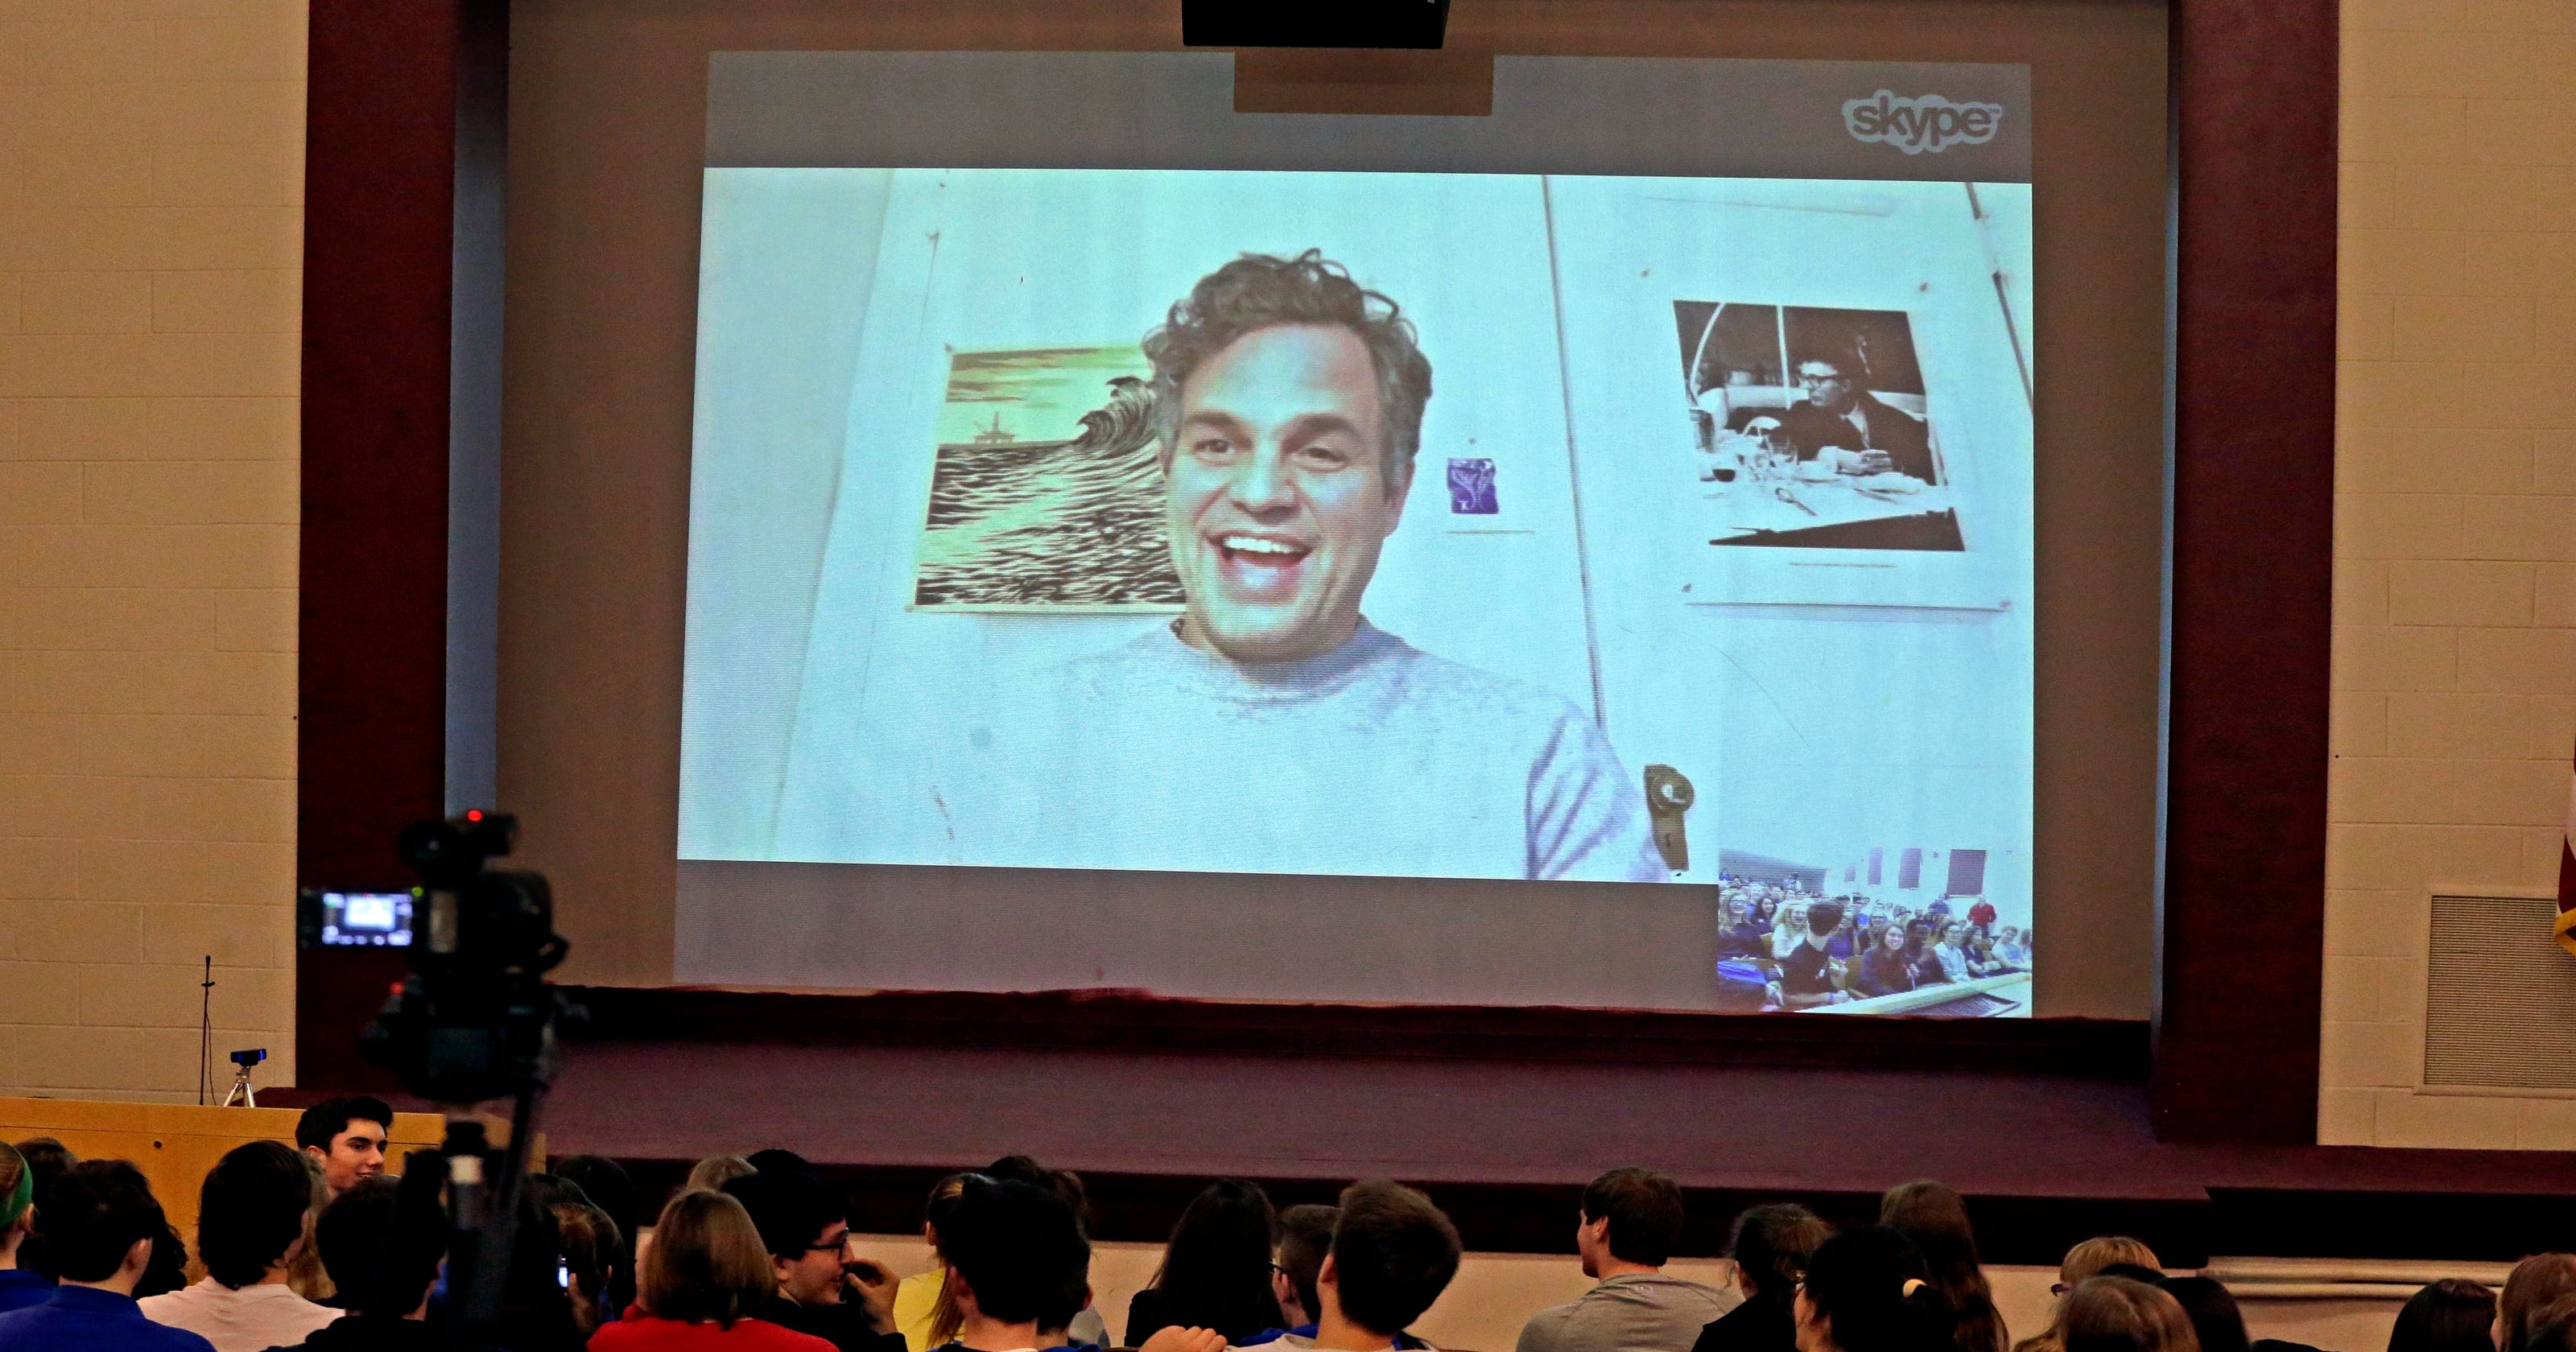 Mark Ruffalo Talks Acting And More With Theater Students In His Kenosha Hometown